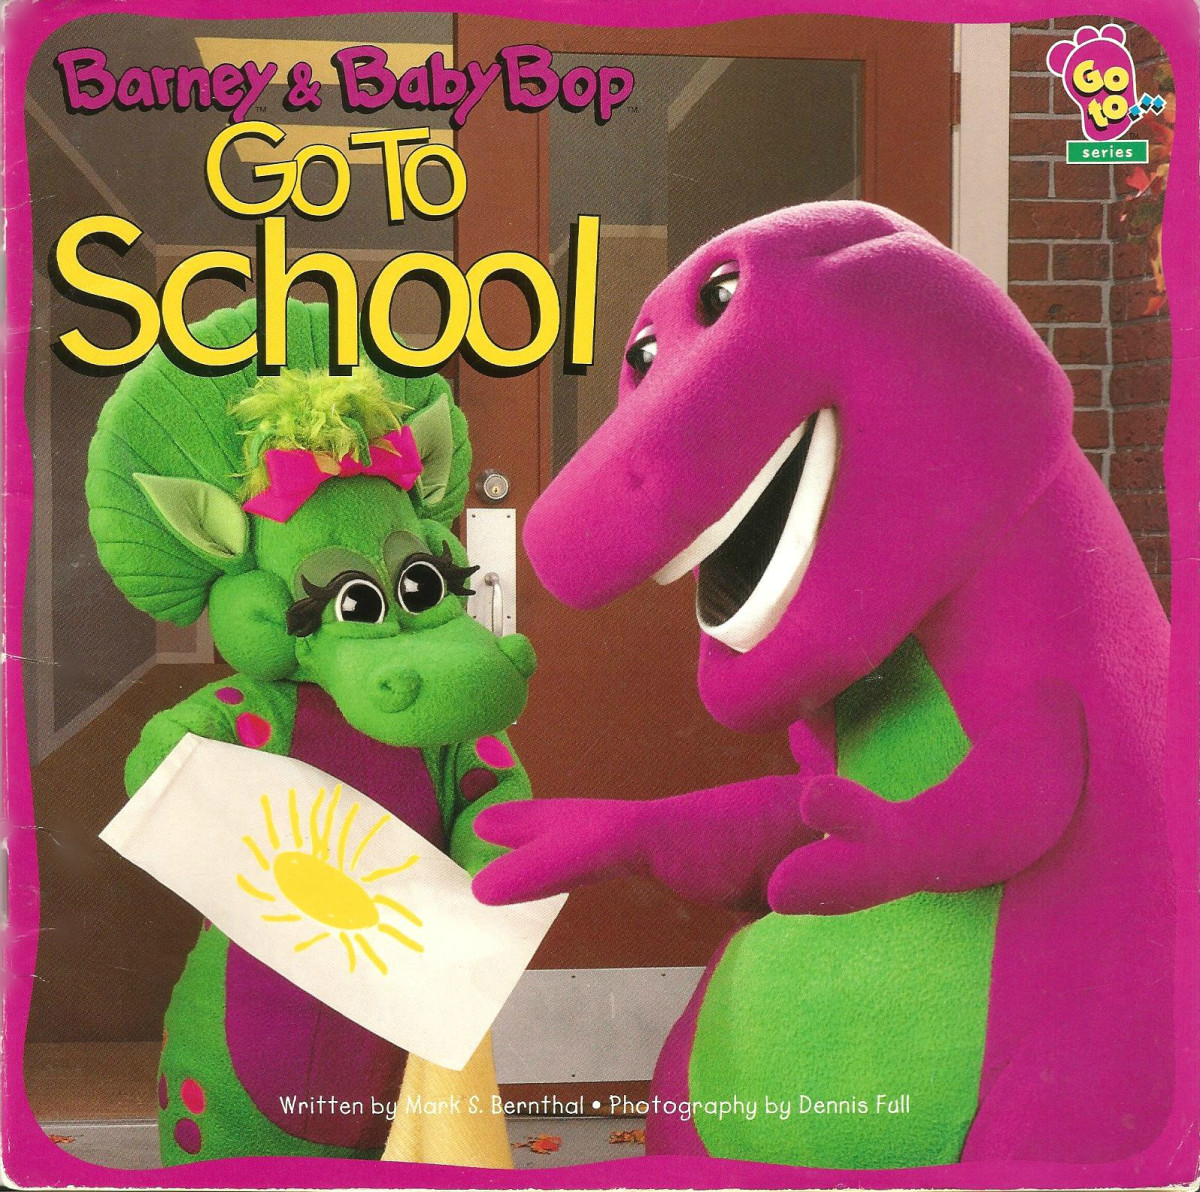 The is a fun book about going to school written  by  Mark S. Bernthal and it  as beautiful photography by Dennis Full. Published in 1996 by the Lyons Partnership.